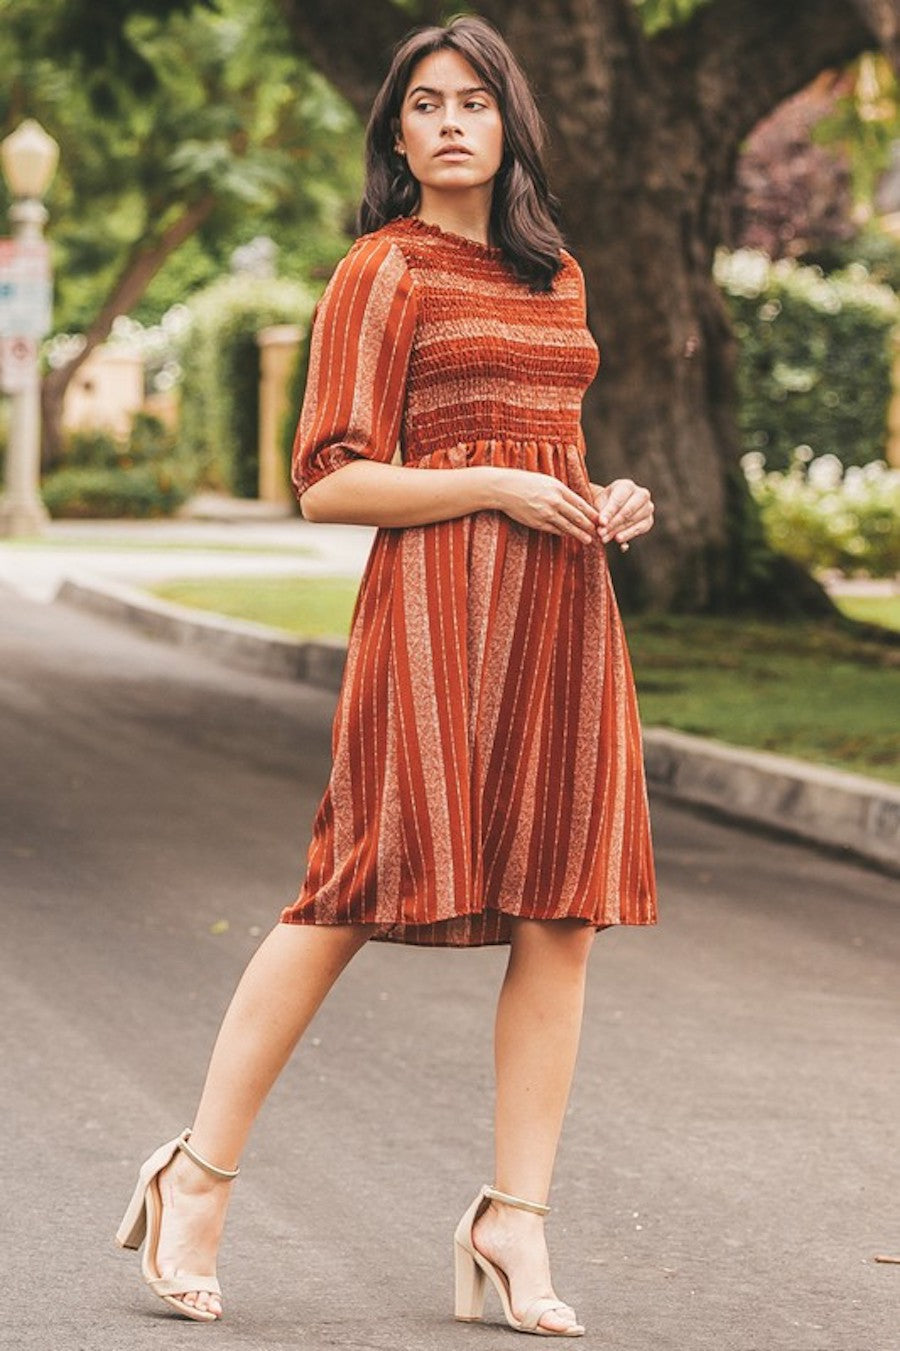 Pumpkin Spice Smocked Dress